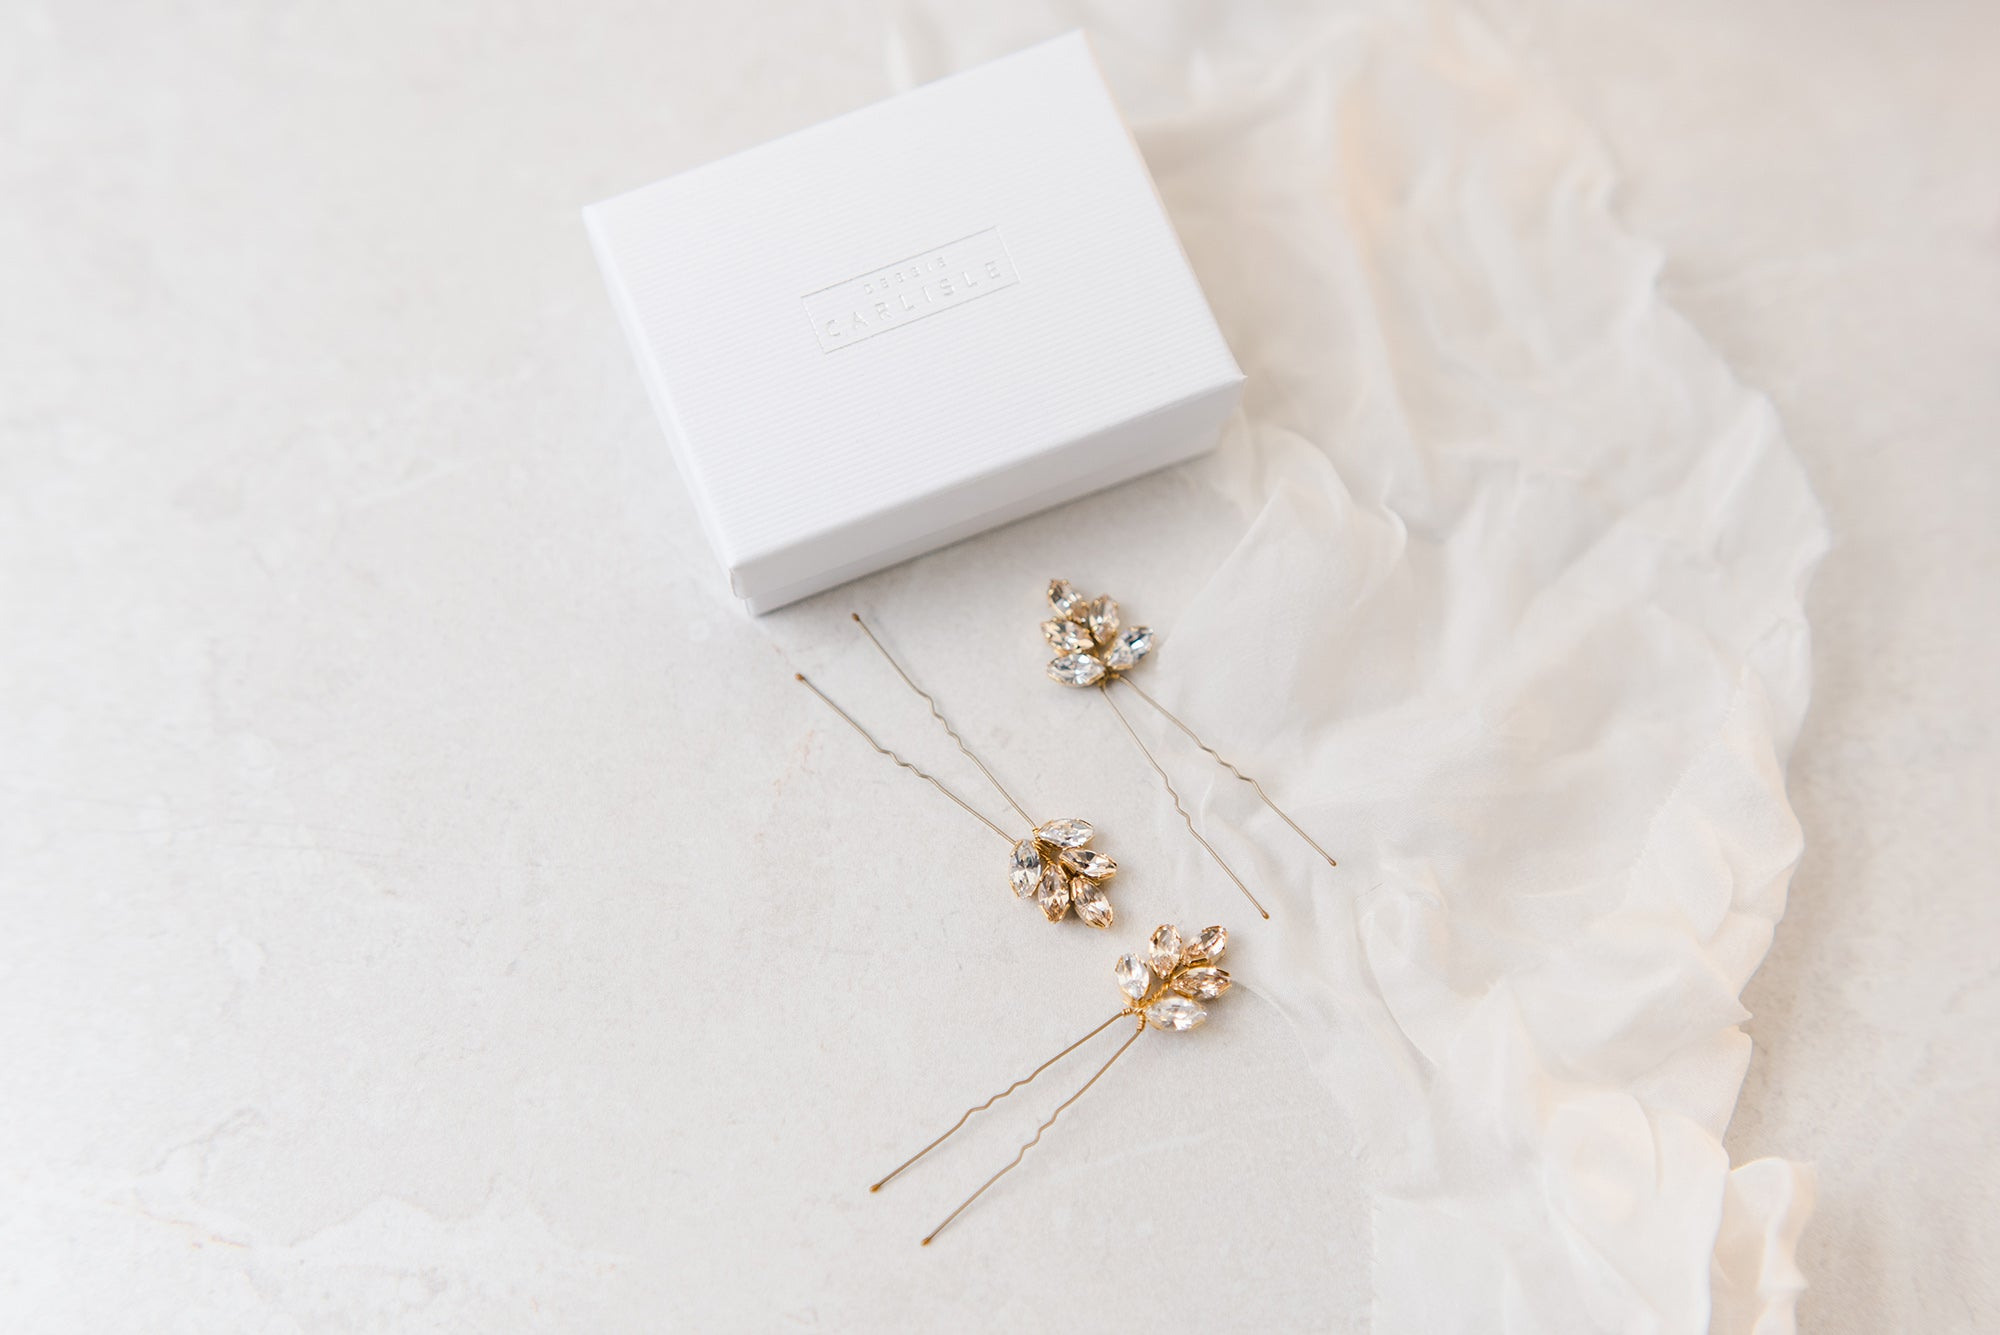 Lyra hairpins with gift box